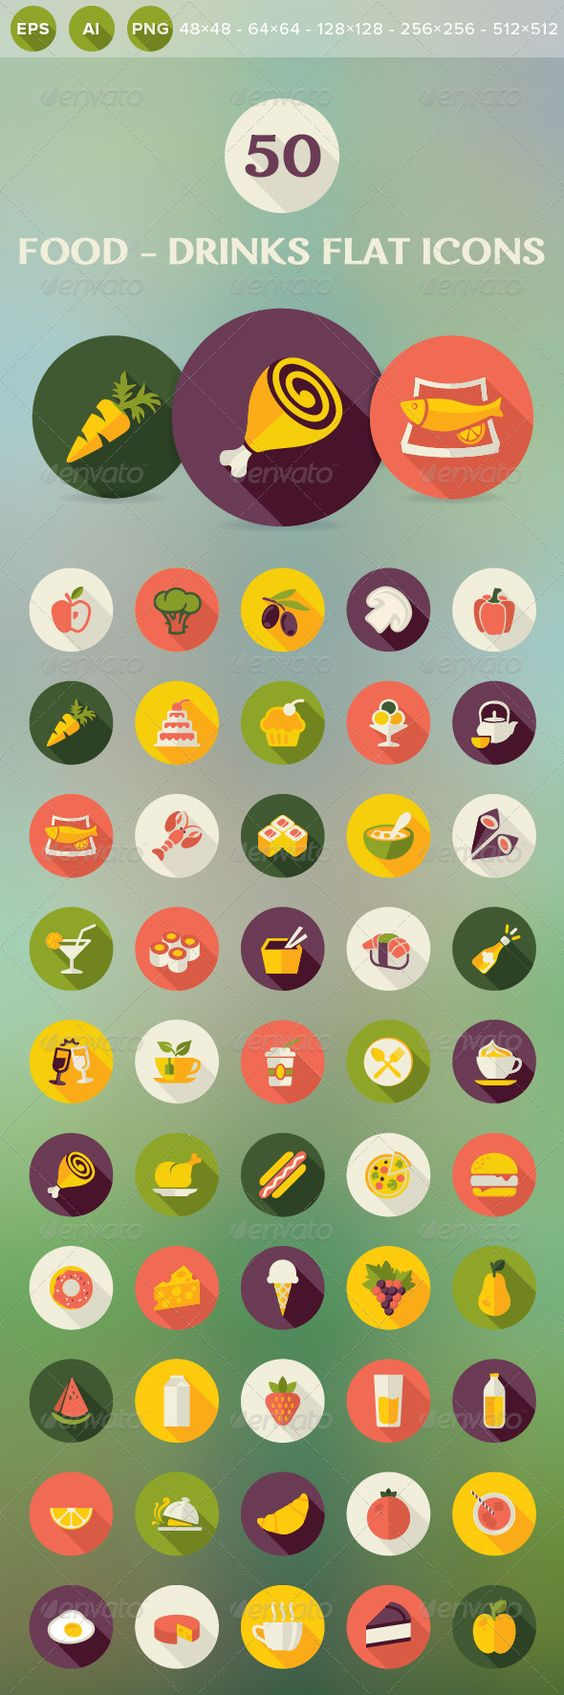 Food and Drinks Flat Icons (Food) | DailyDesignMag